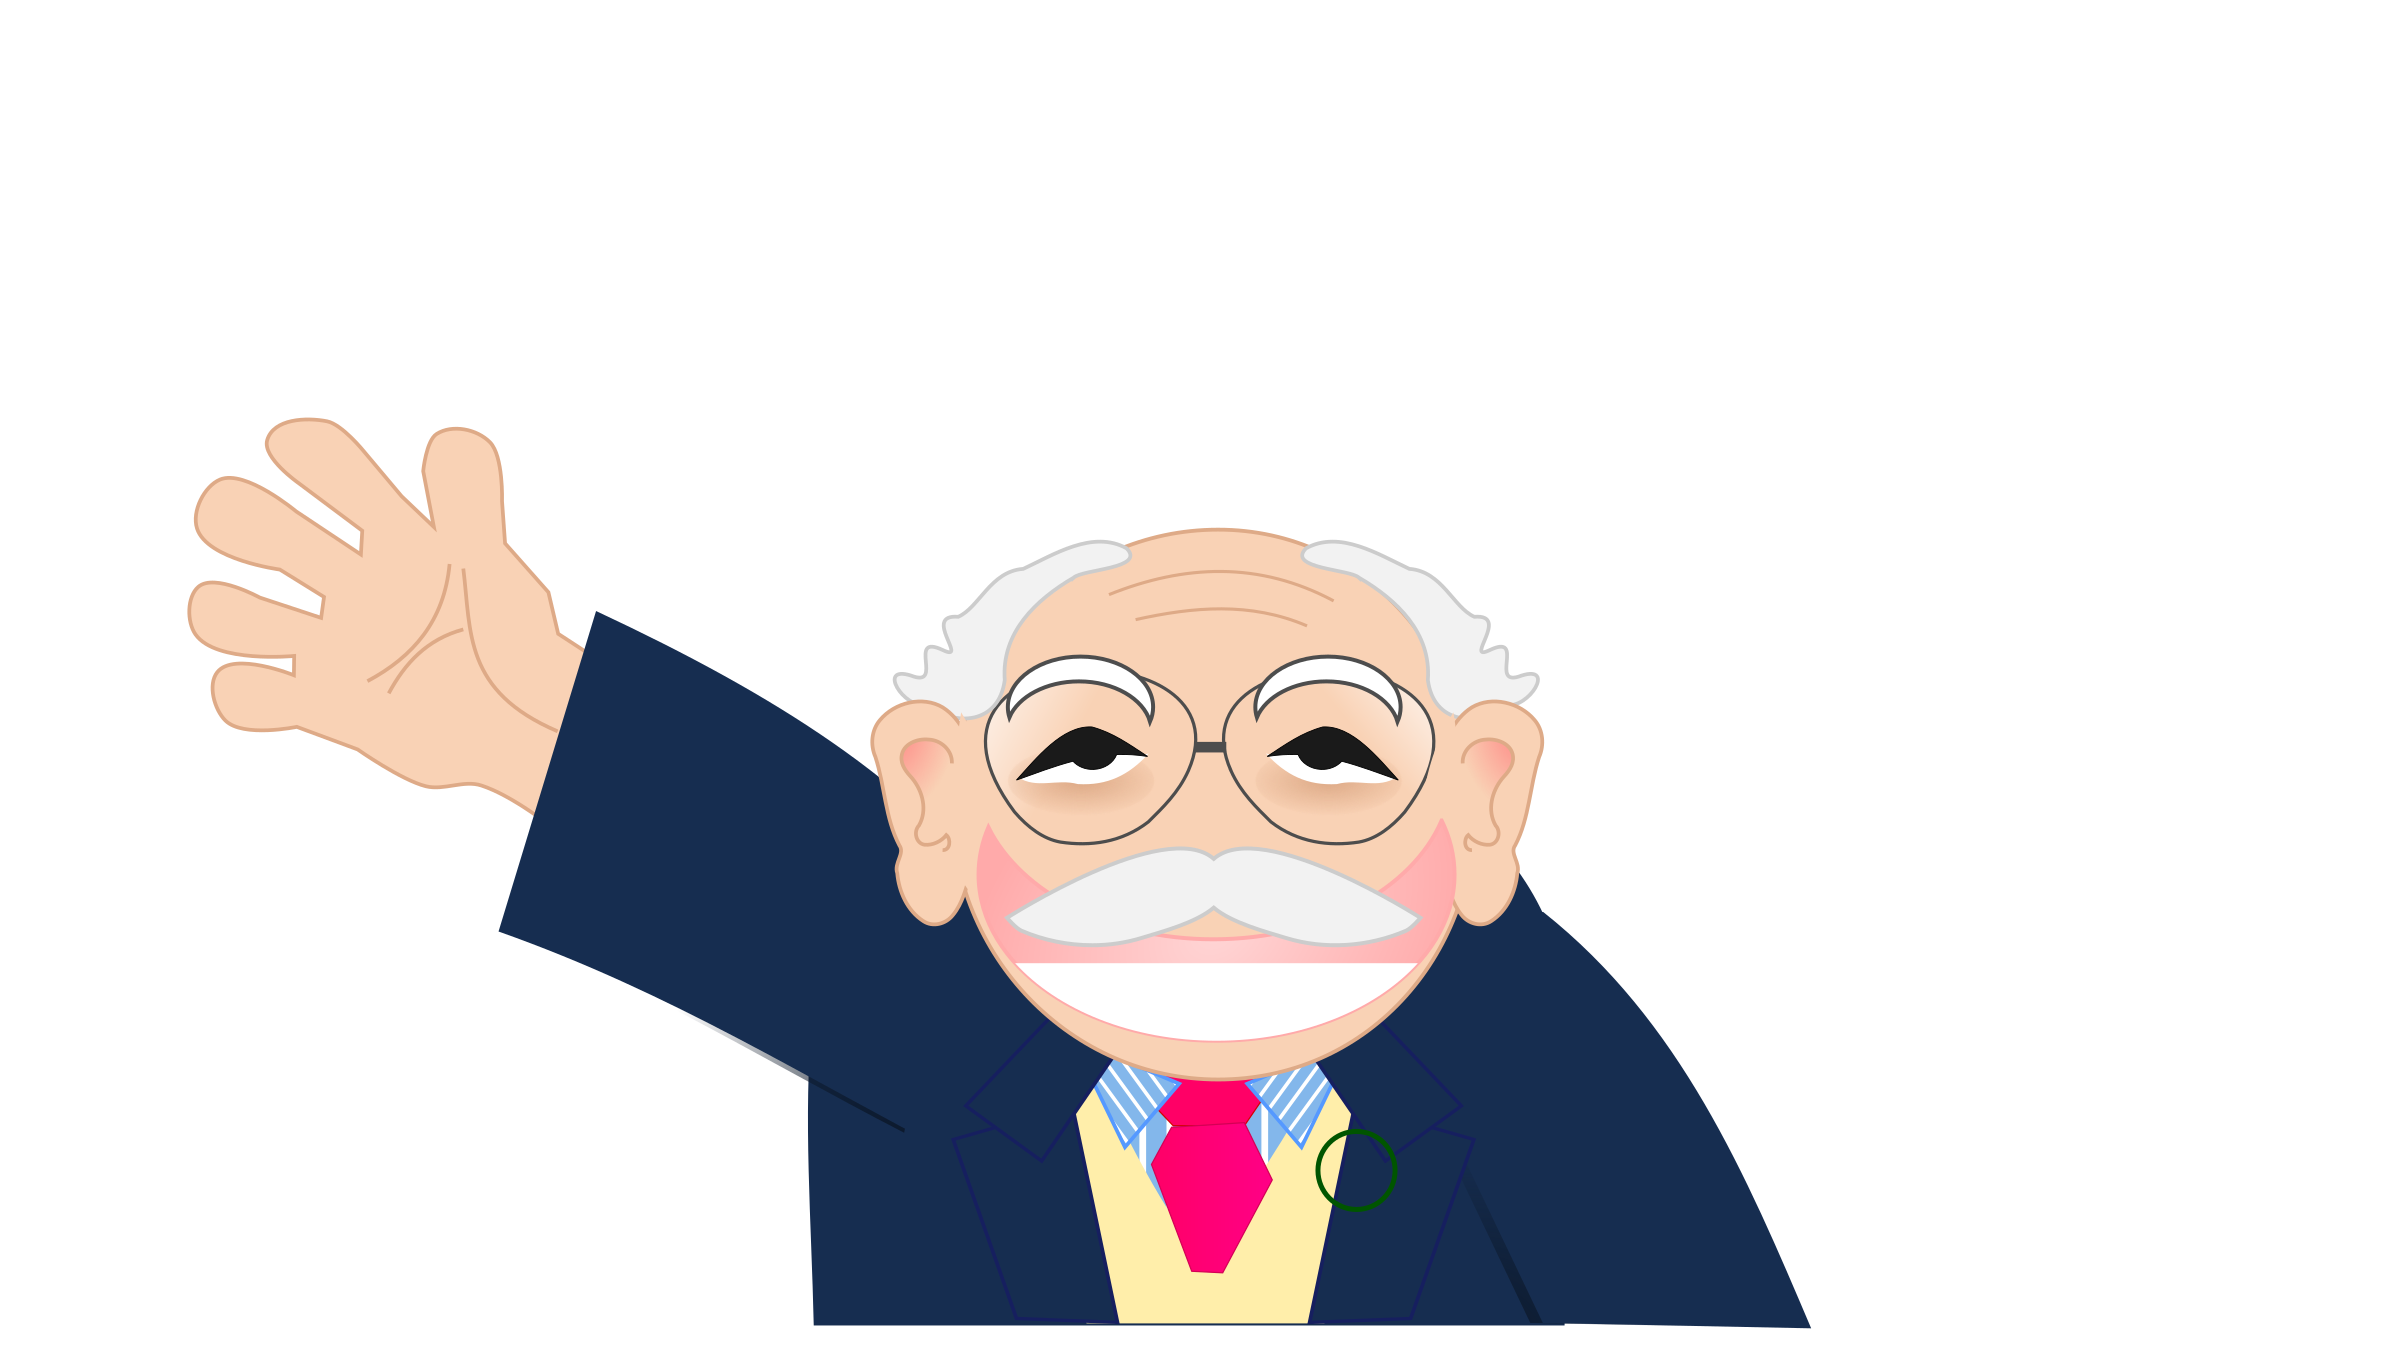 Clipart man with big smile picture download Clipart - Old Man Smiling picture download